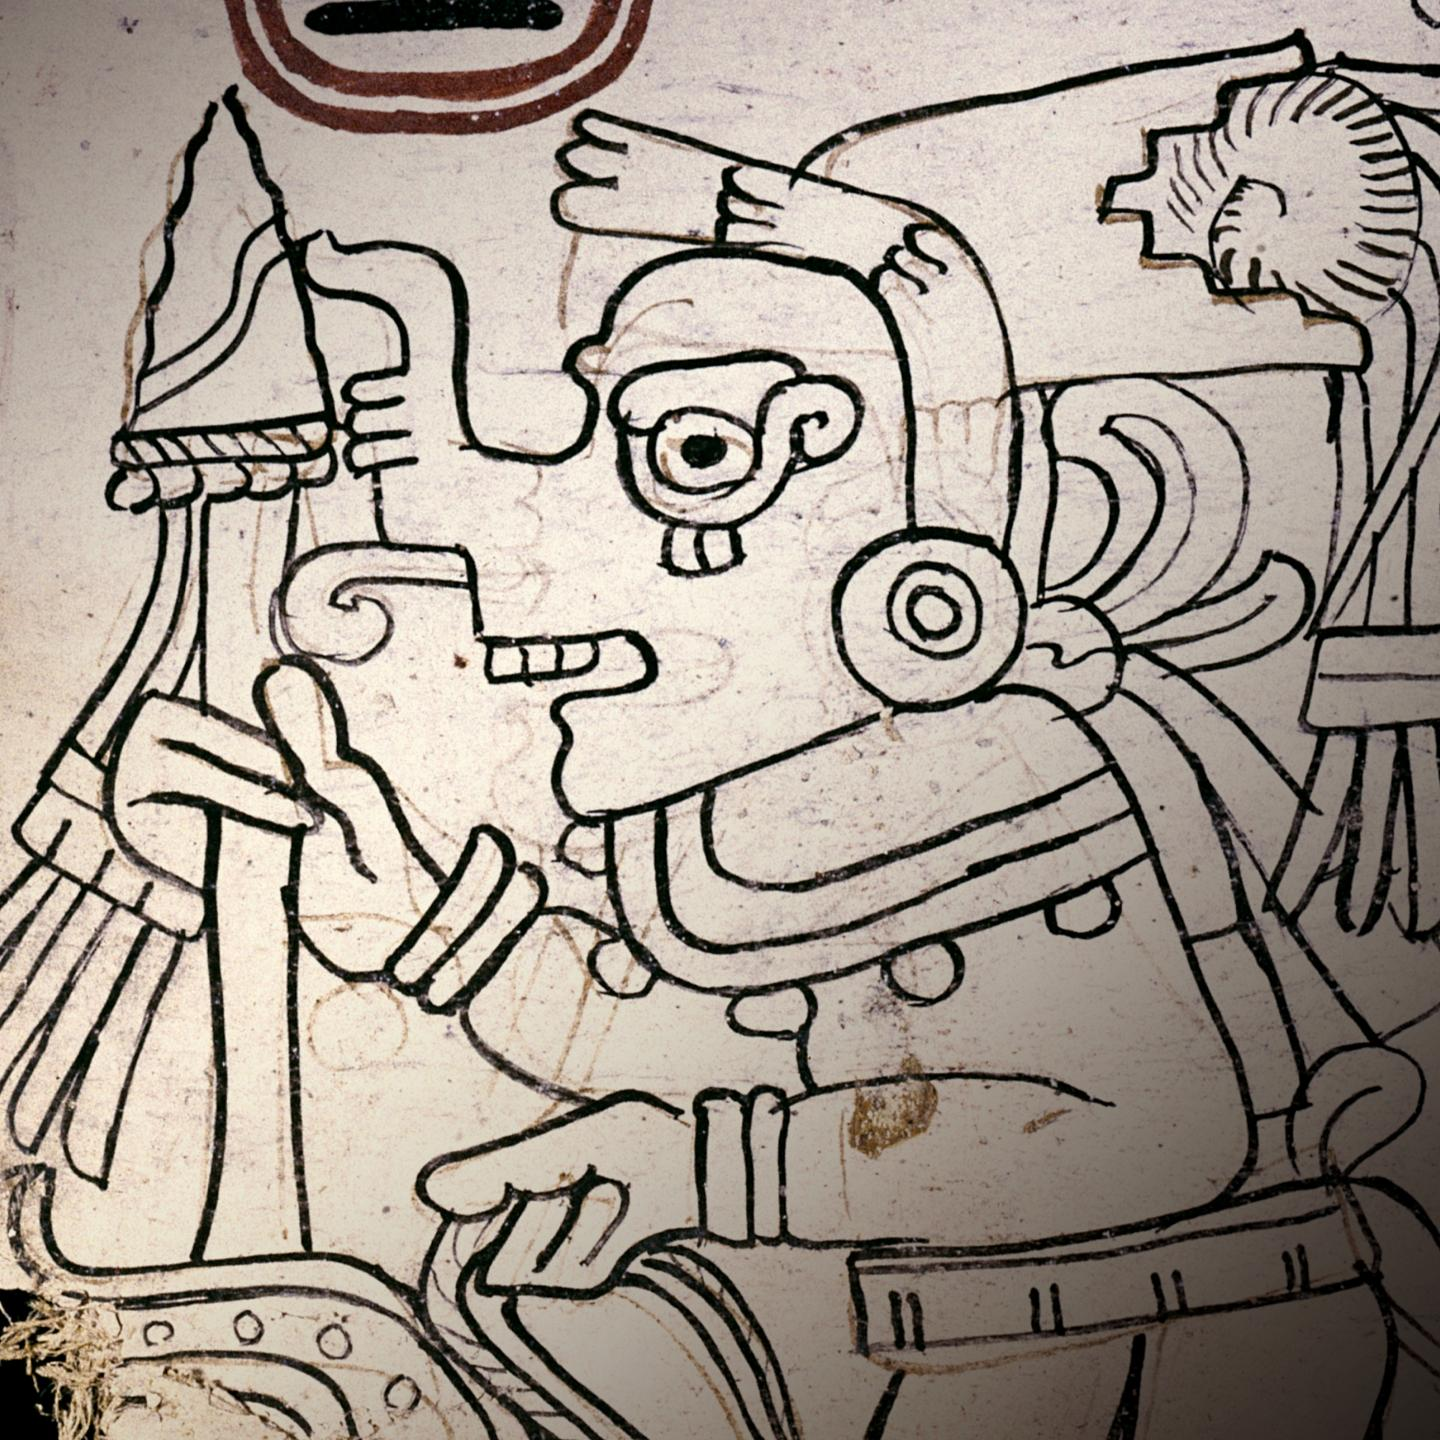 Grolier Codex: 13th Century Maya Document Is Legit, Says Study